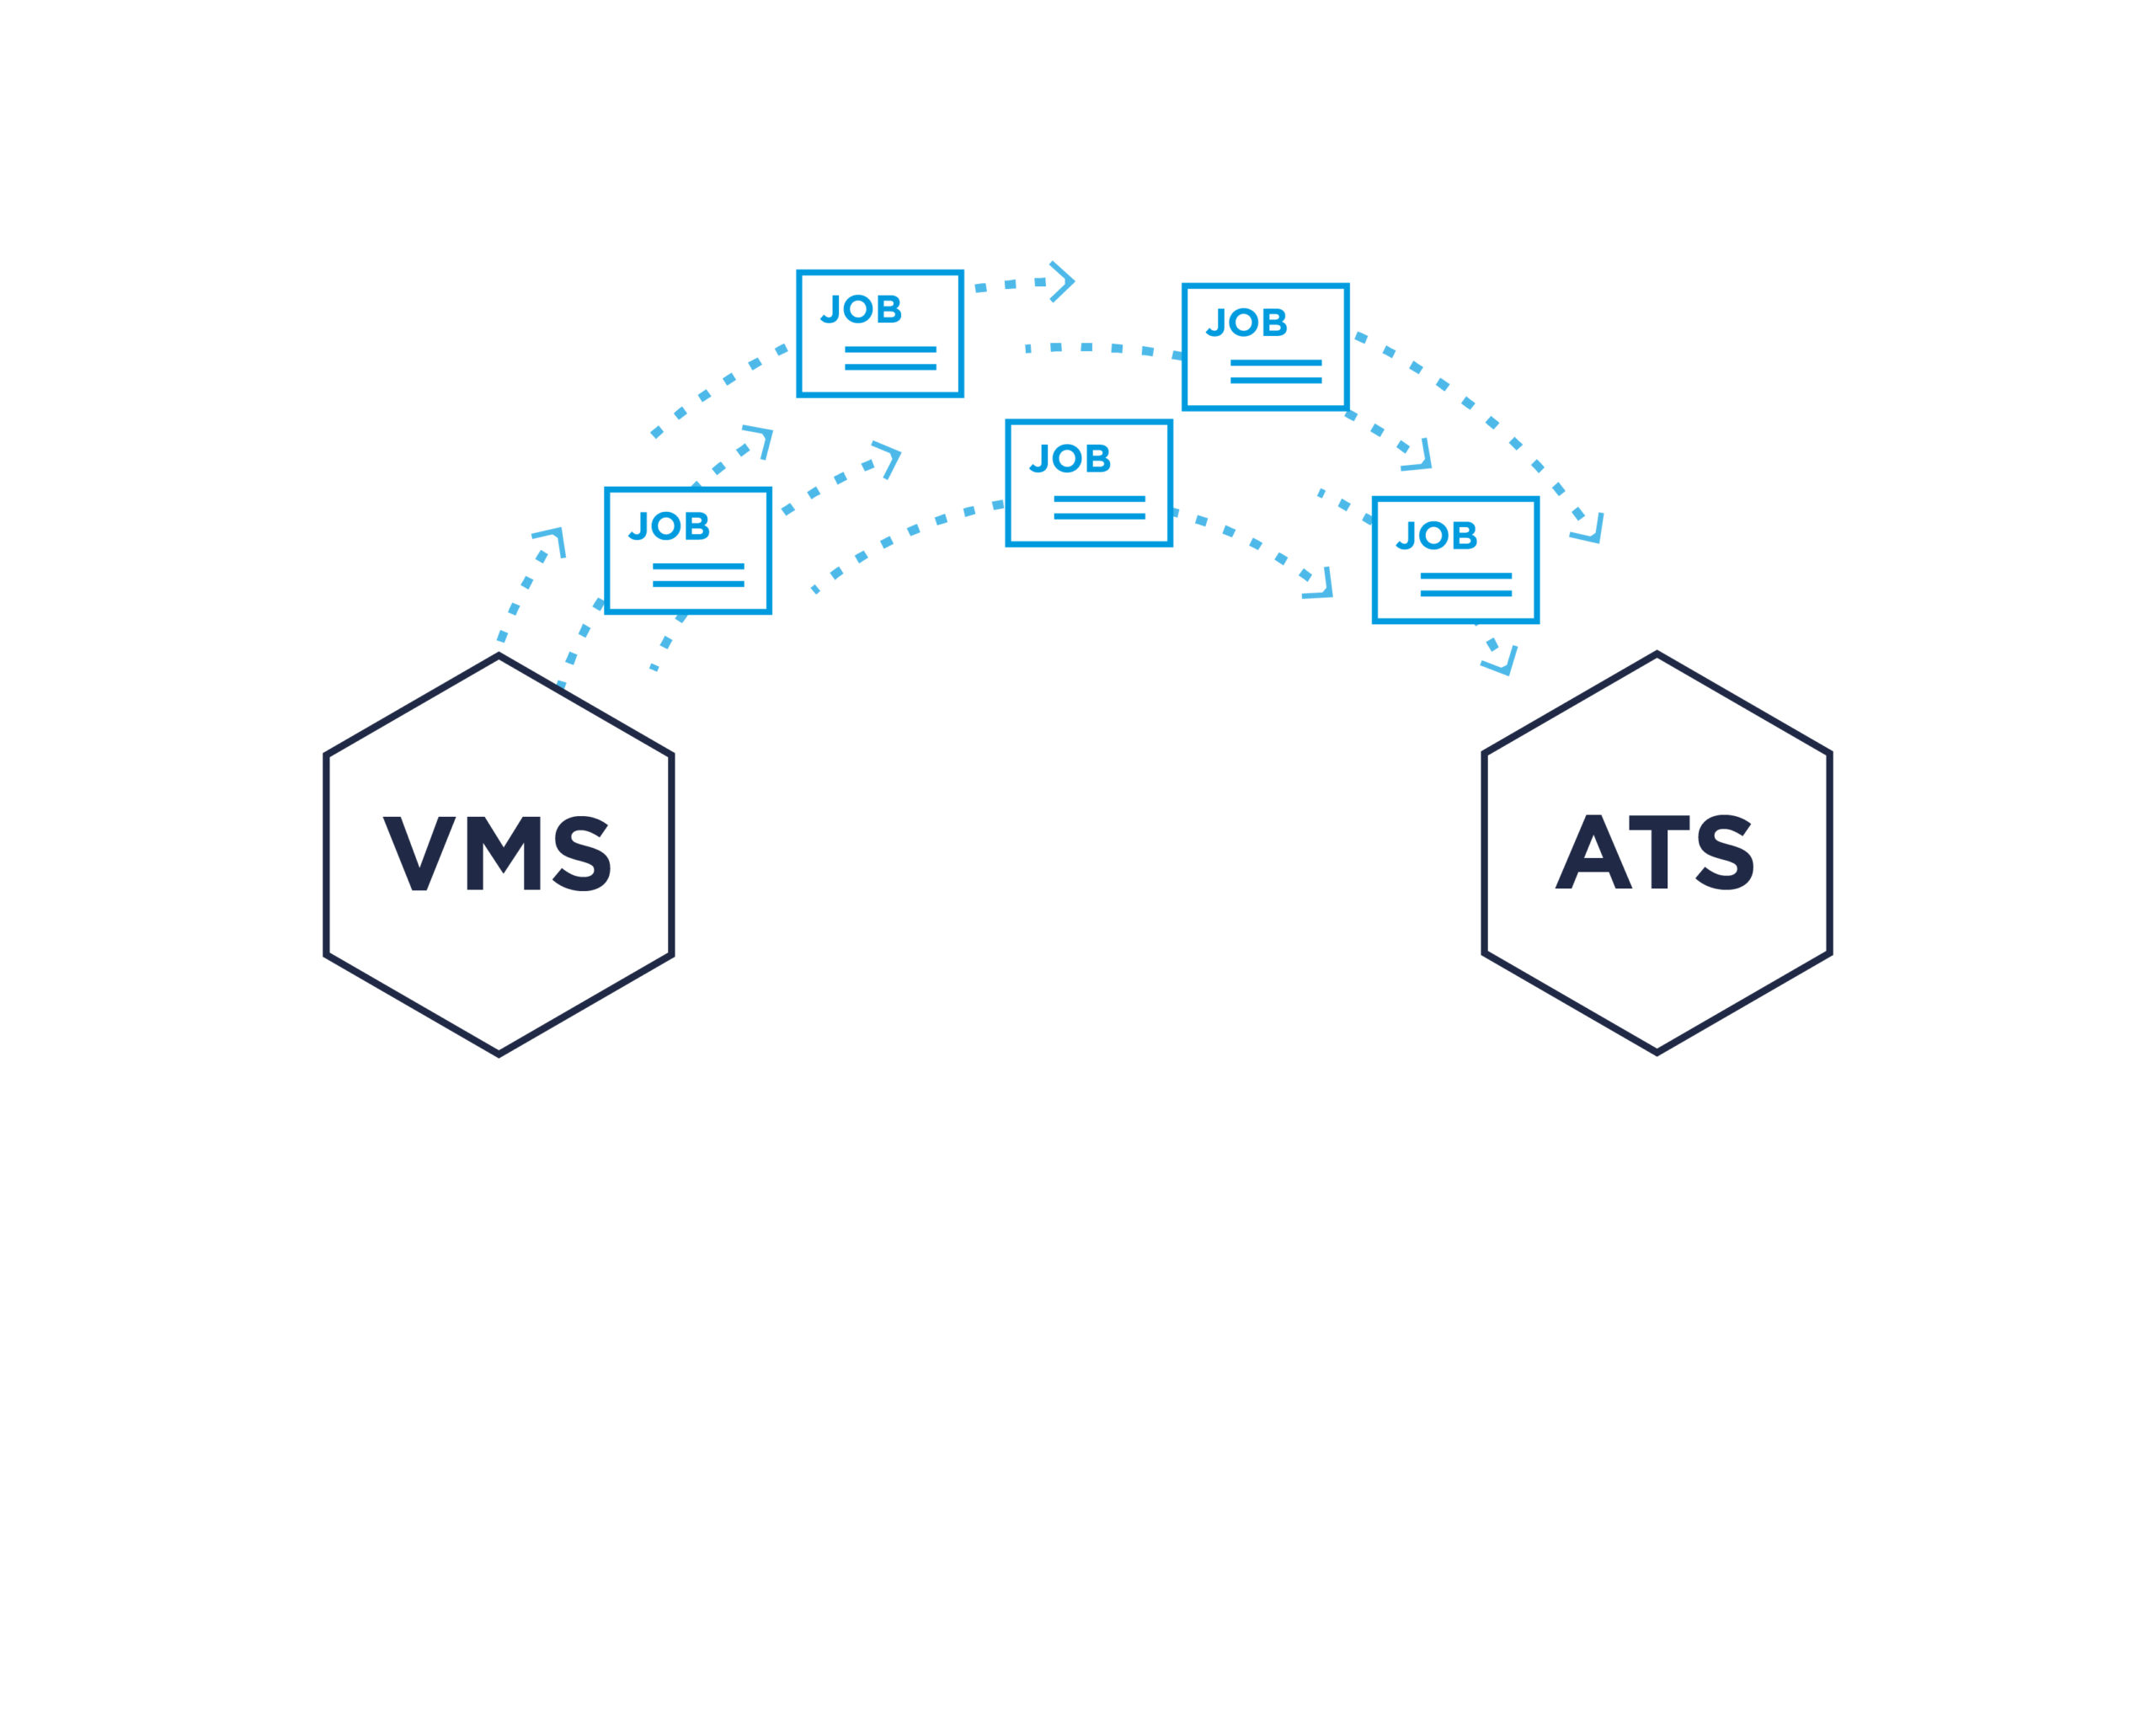 diagram_VMS-ATS_V3